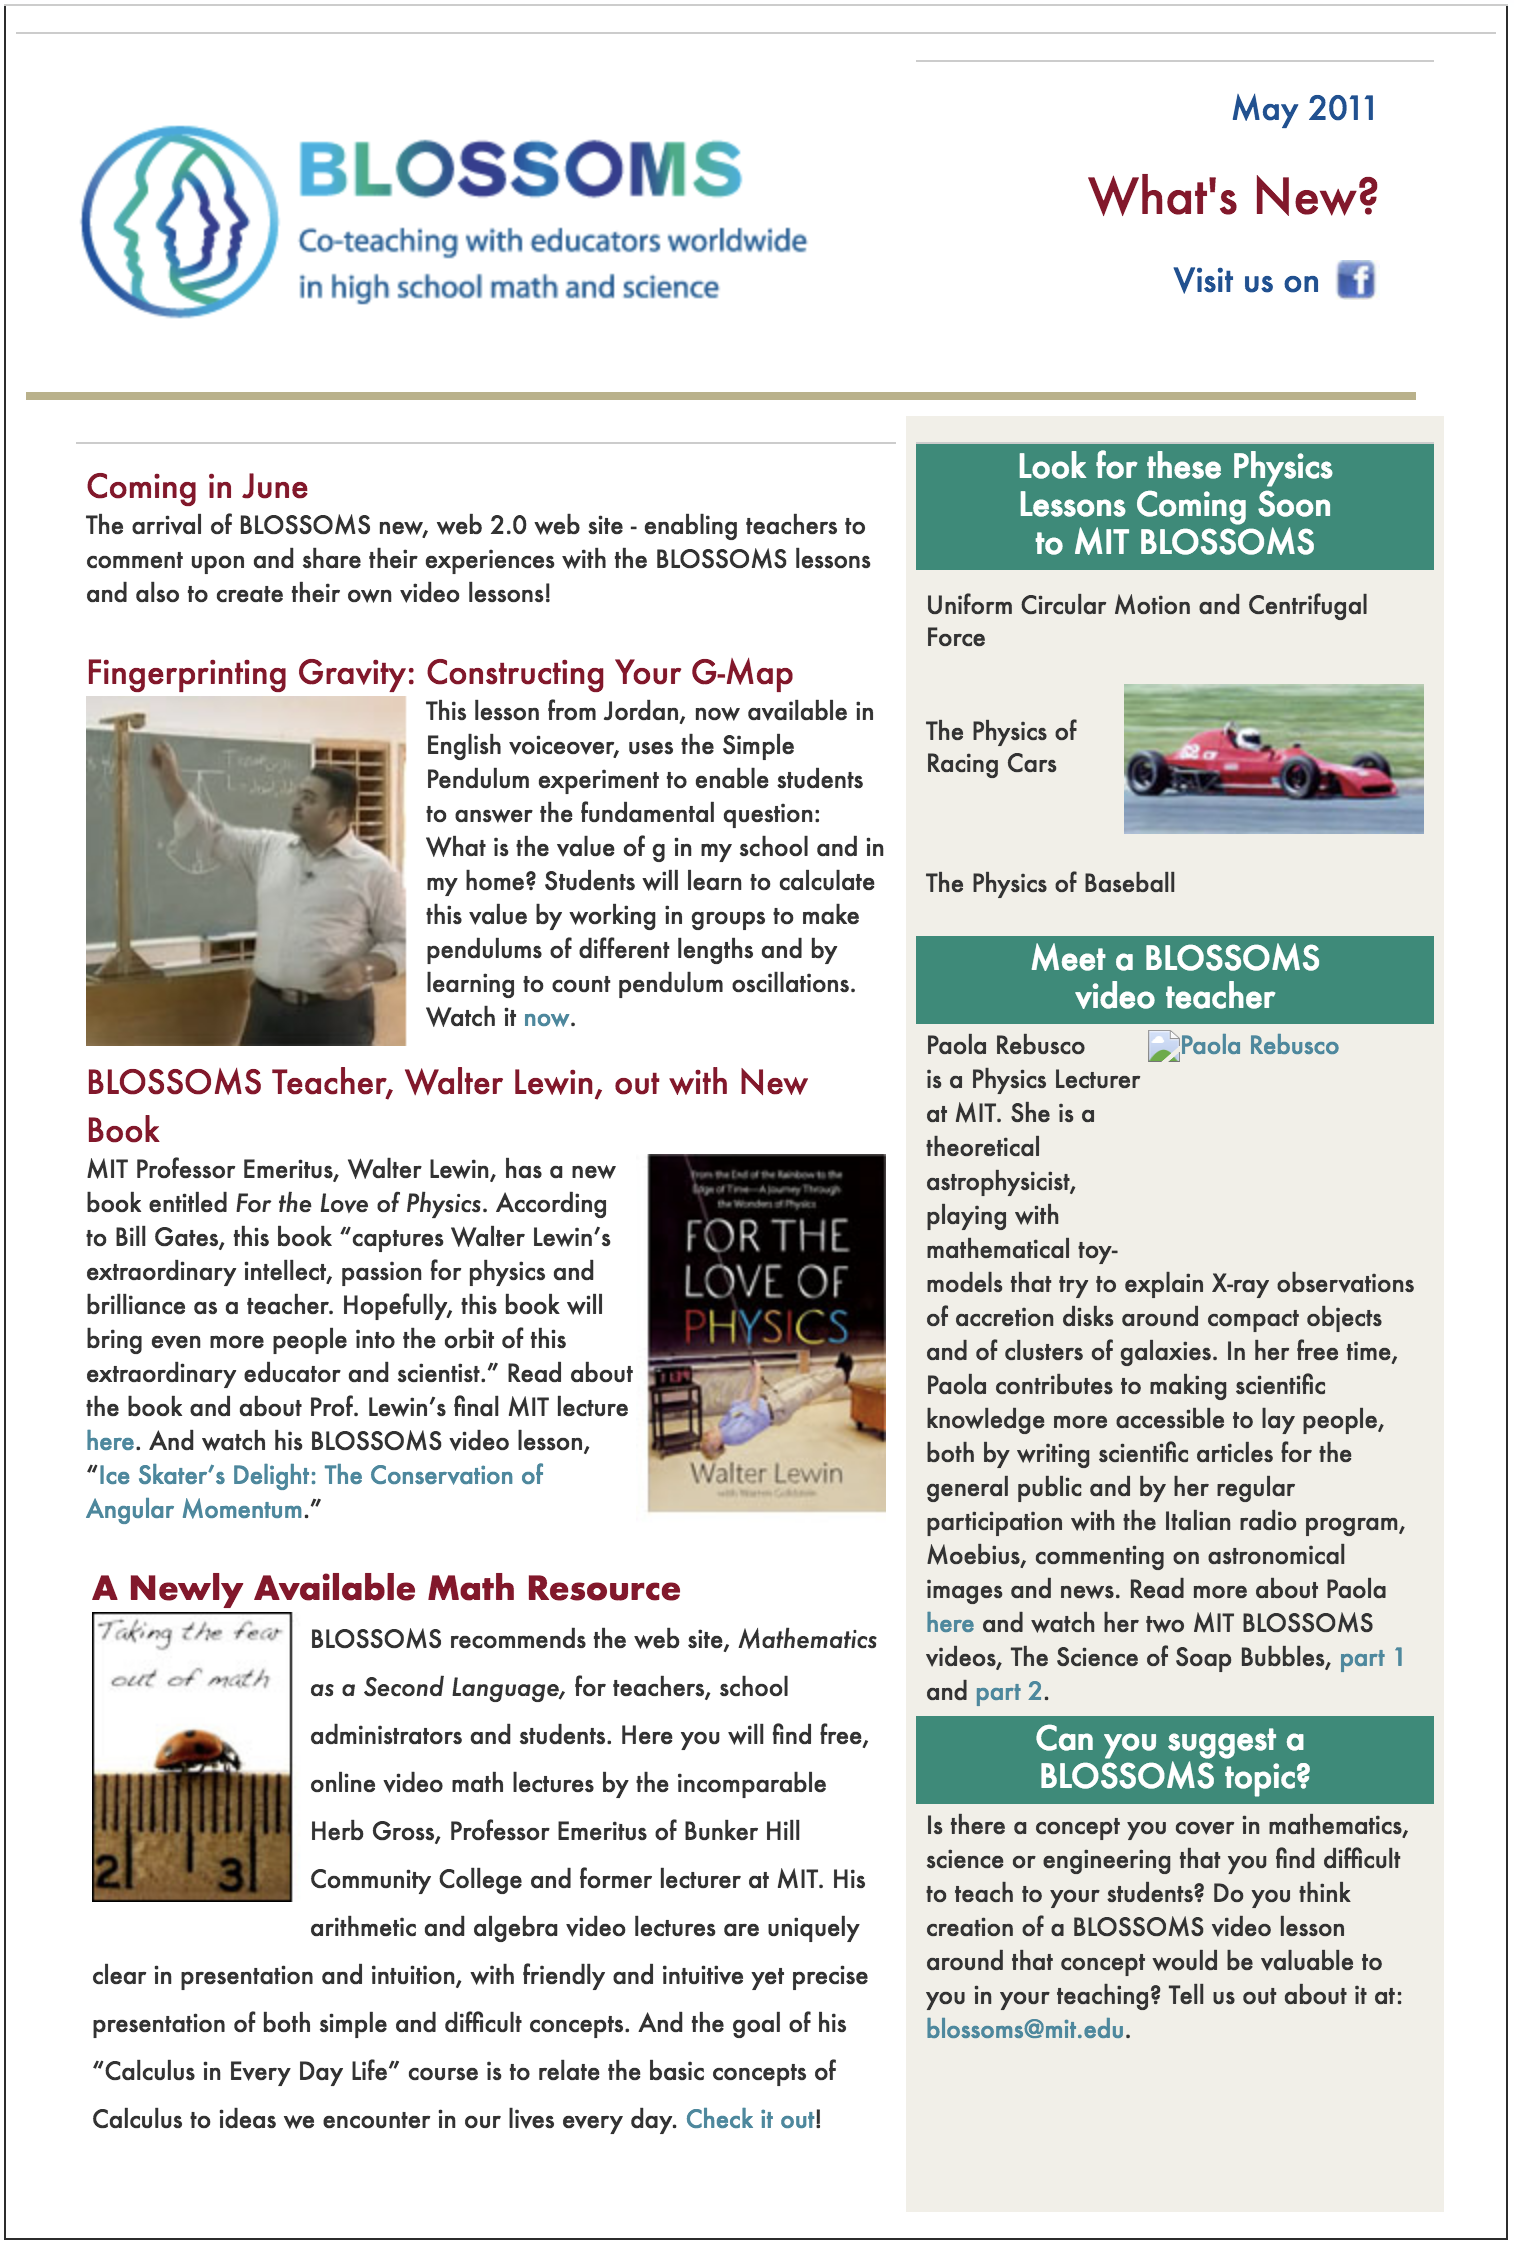 May 2011 BLOSSOMS Newsletter